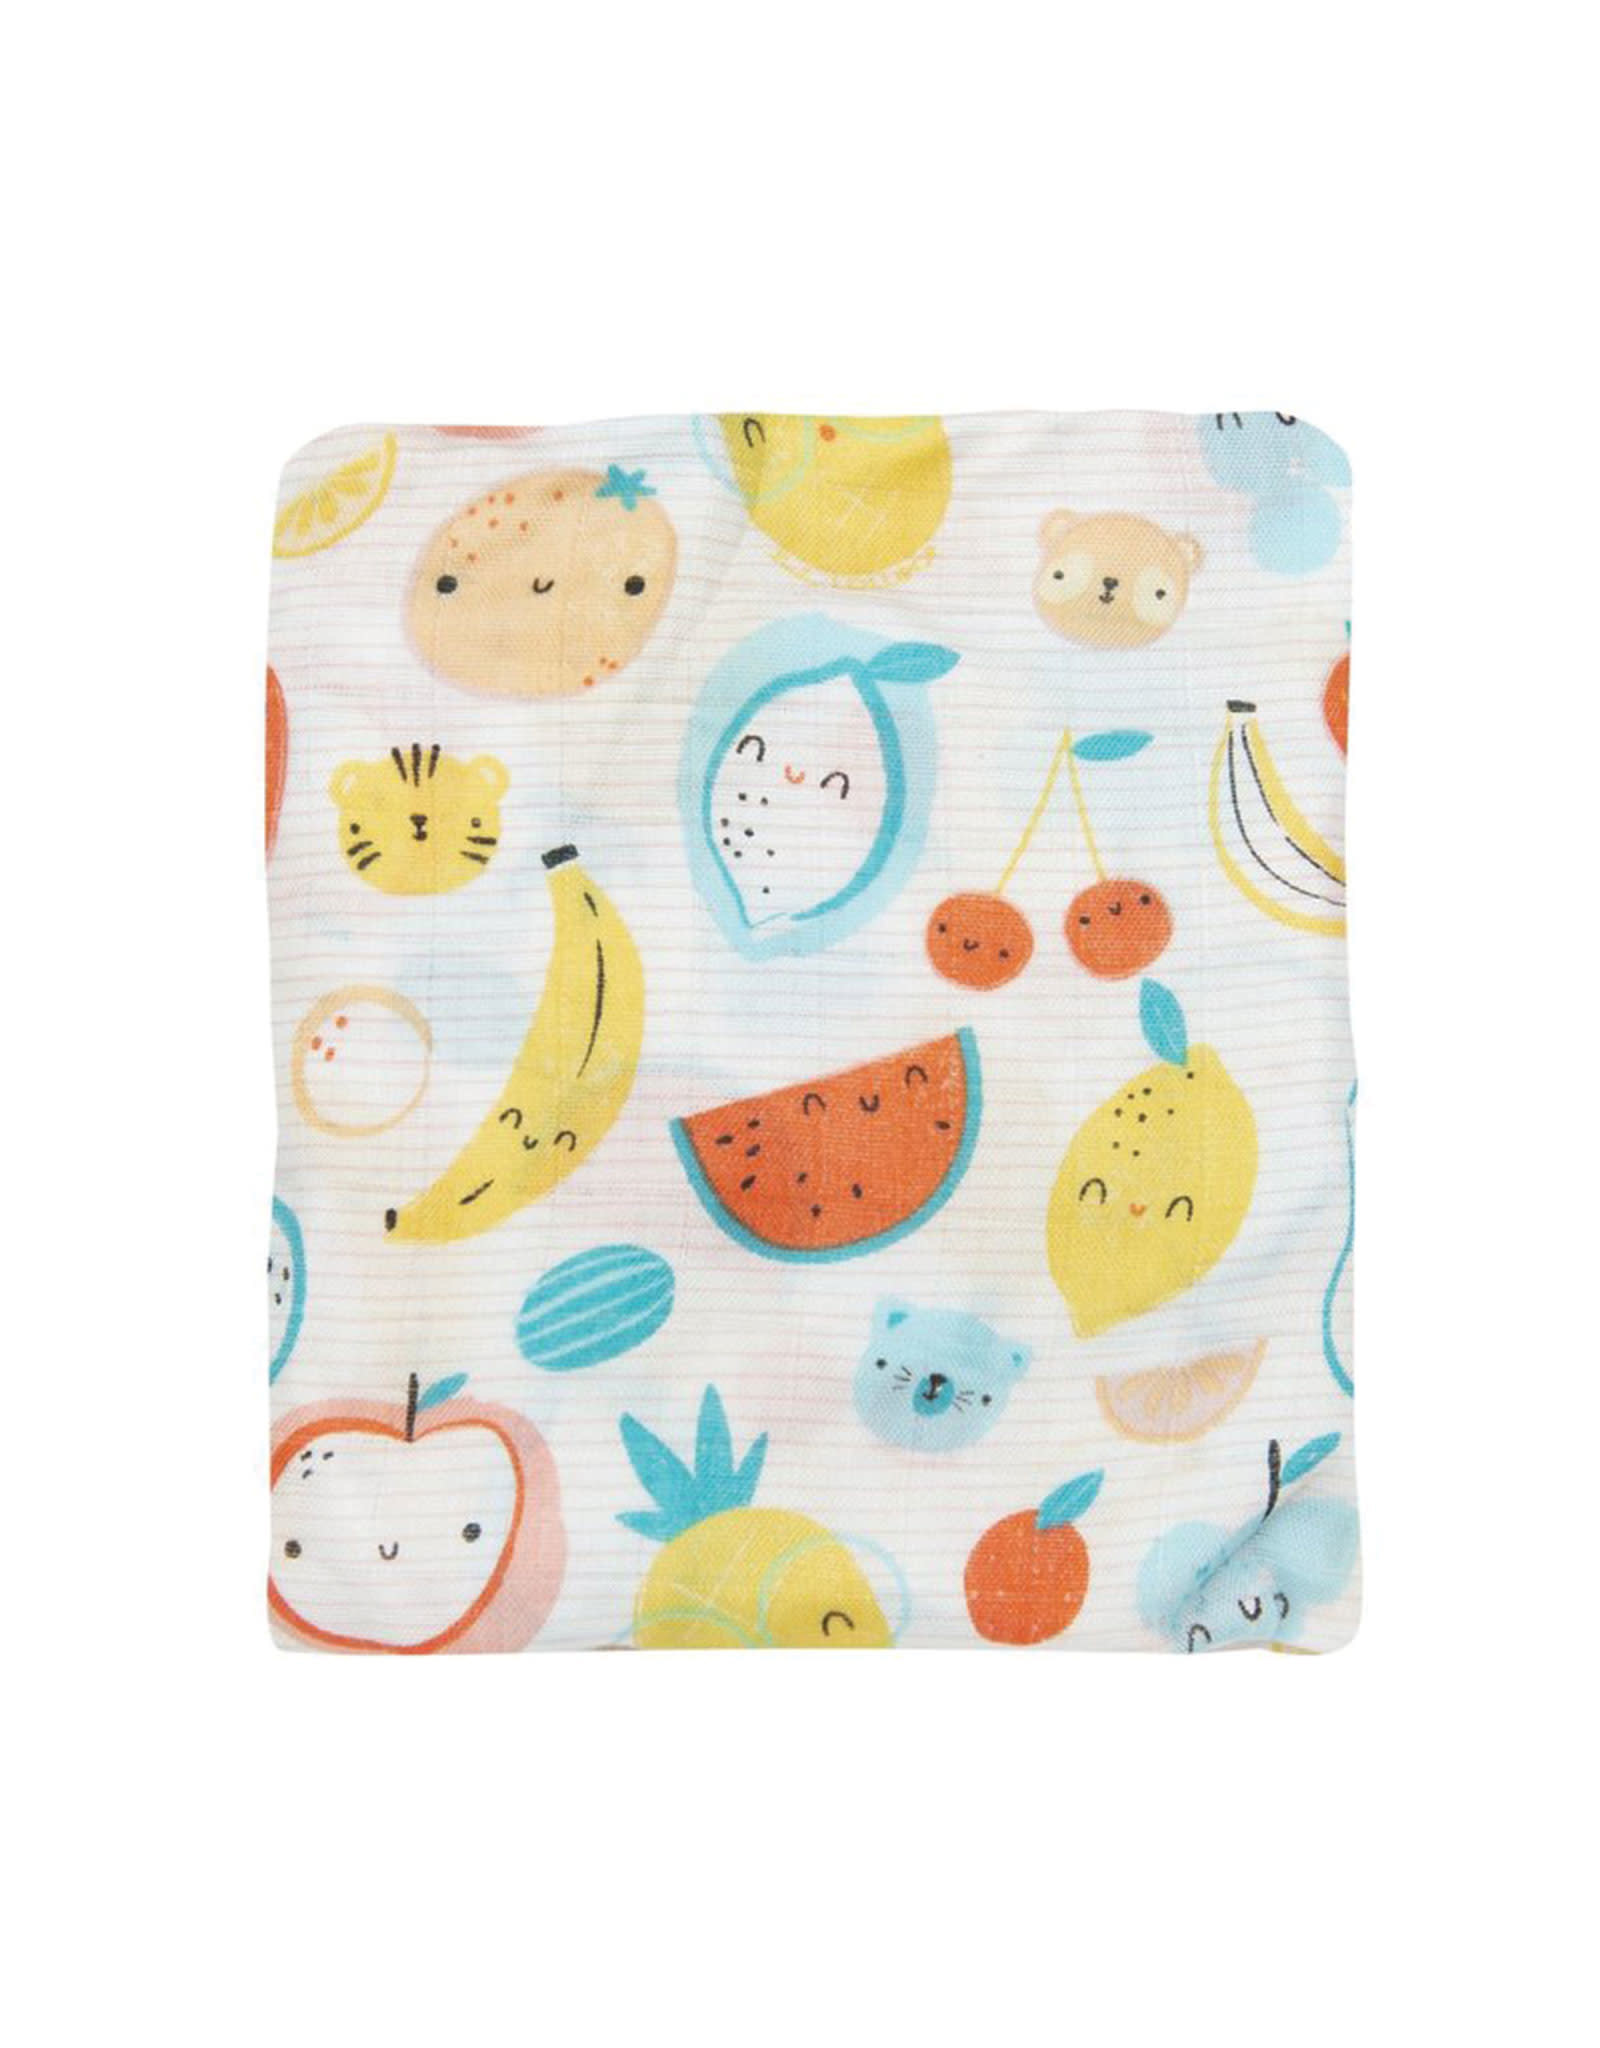 Loulou Lollipop Fitted Crib Sheet - Cutie Fruits